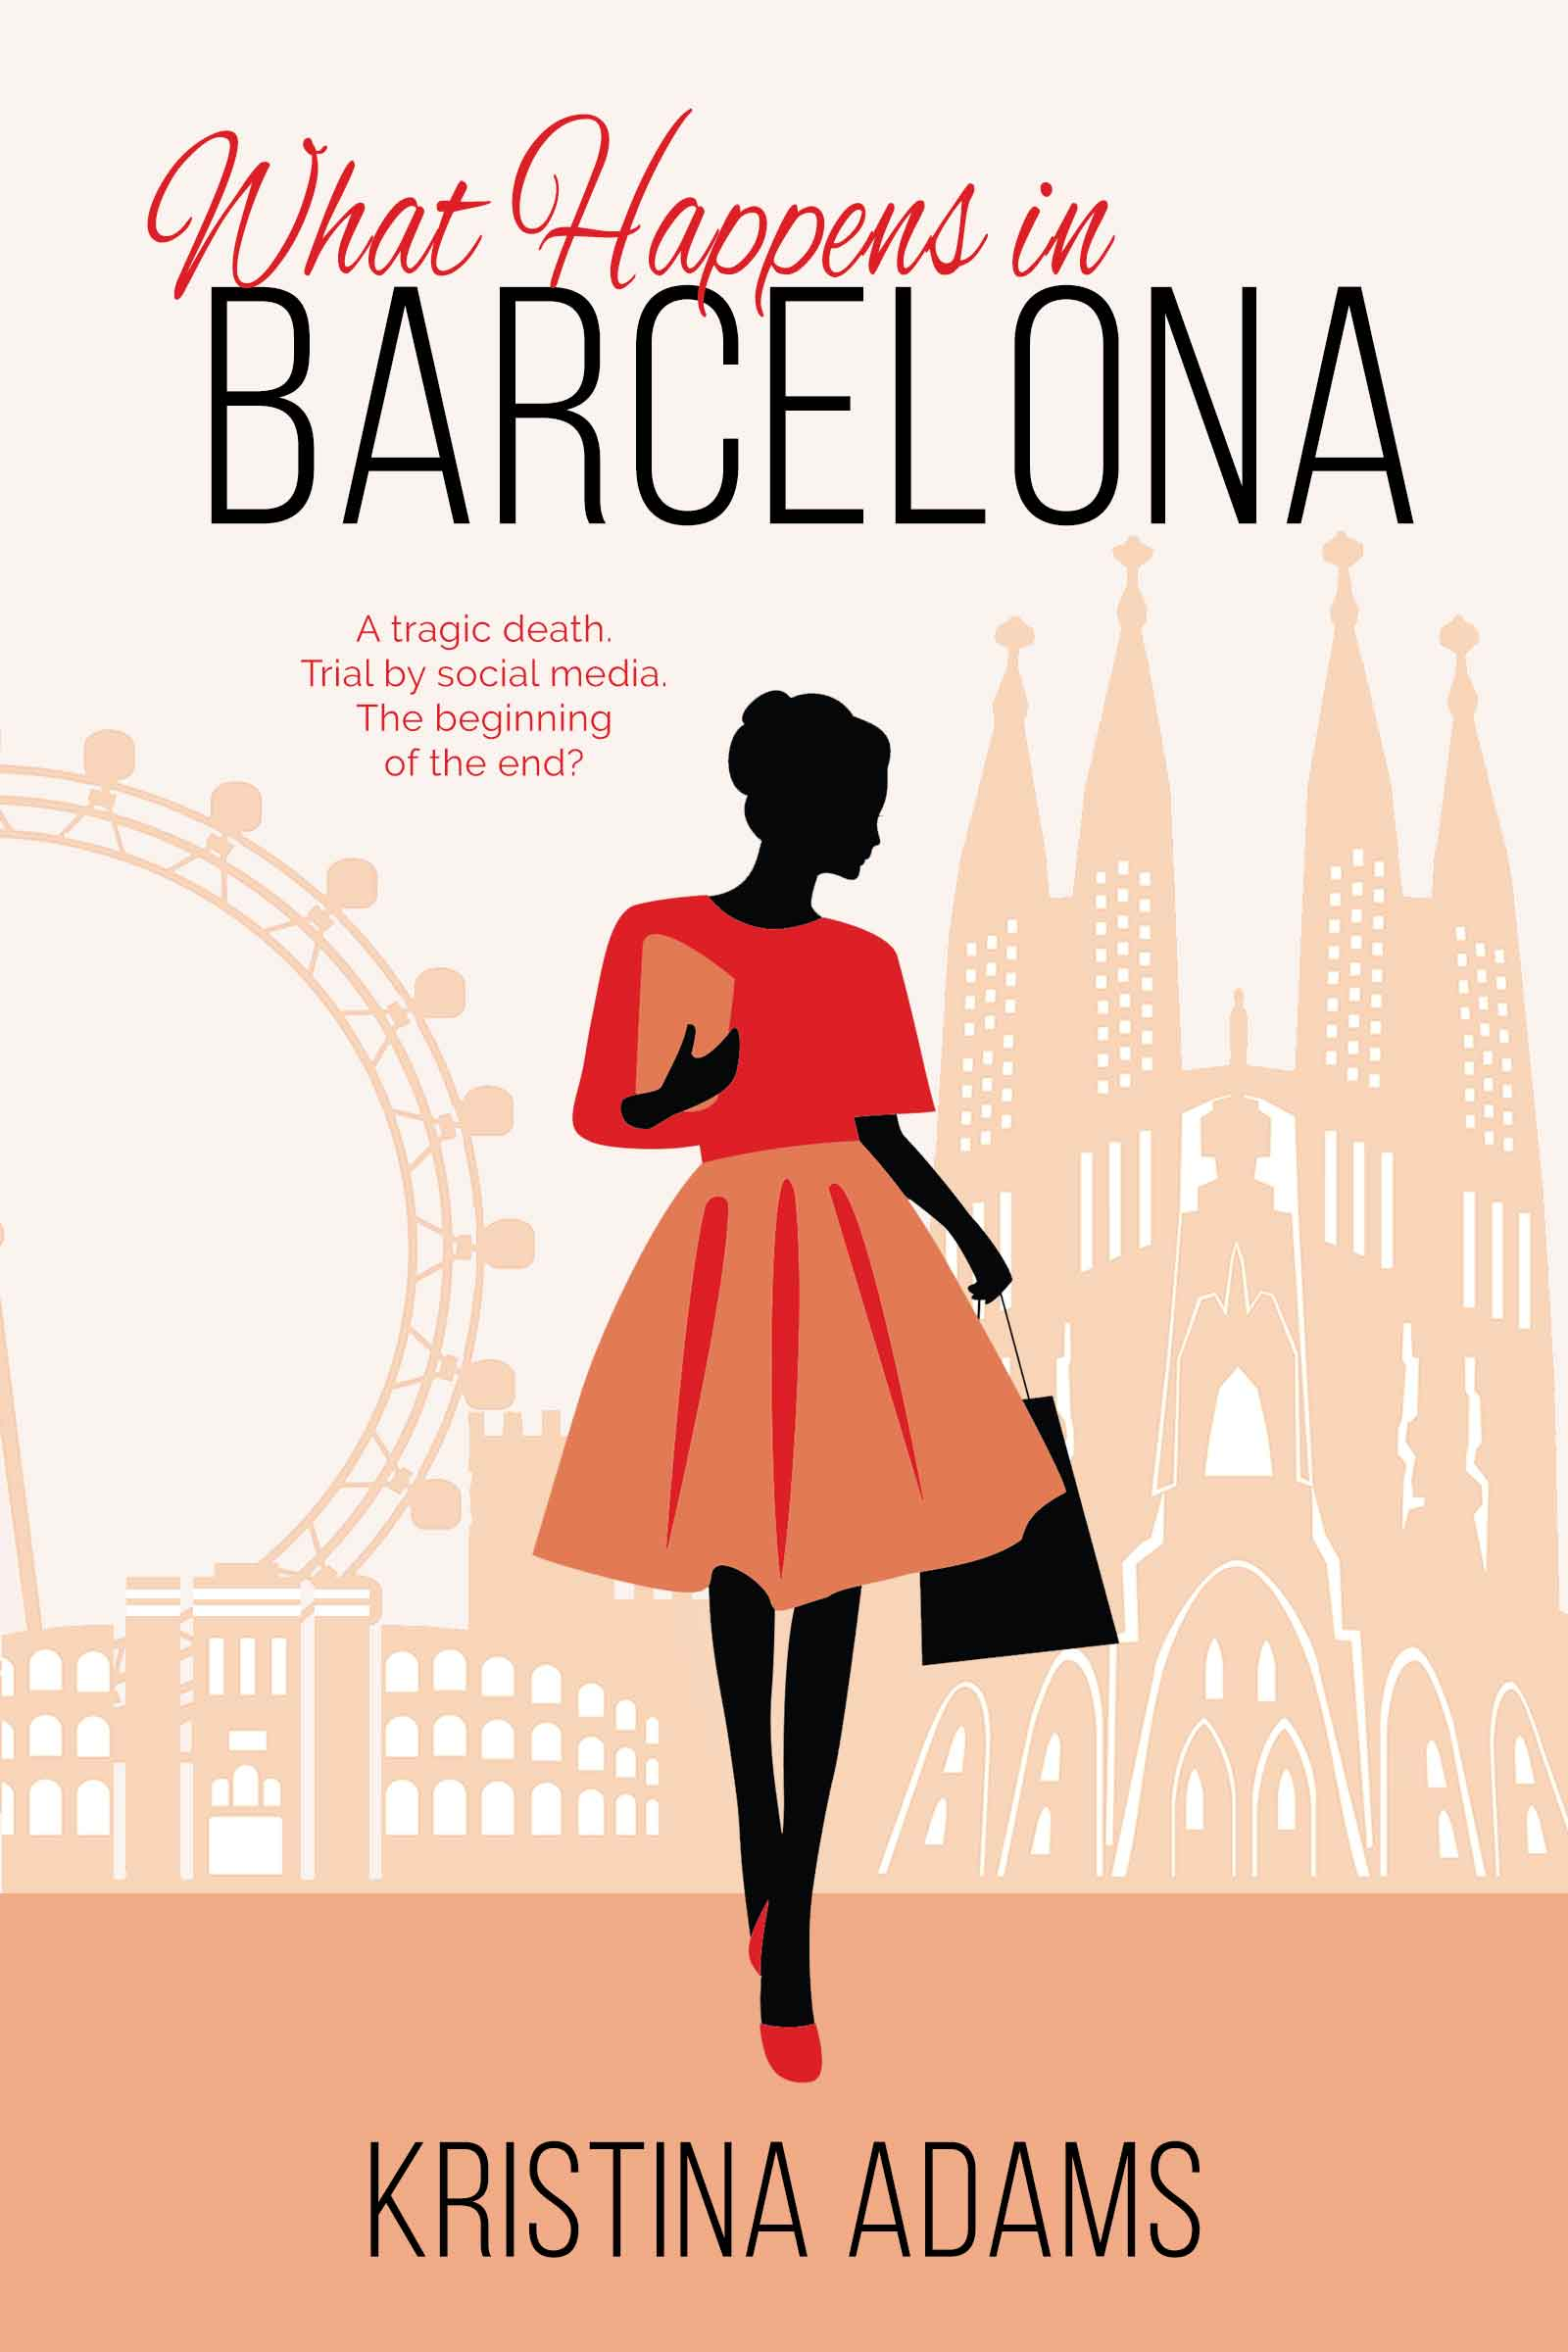 What Happens in Barcelona, the third book in the What Happens in... series by Kristina Adams